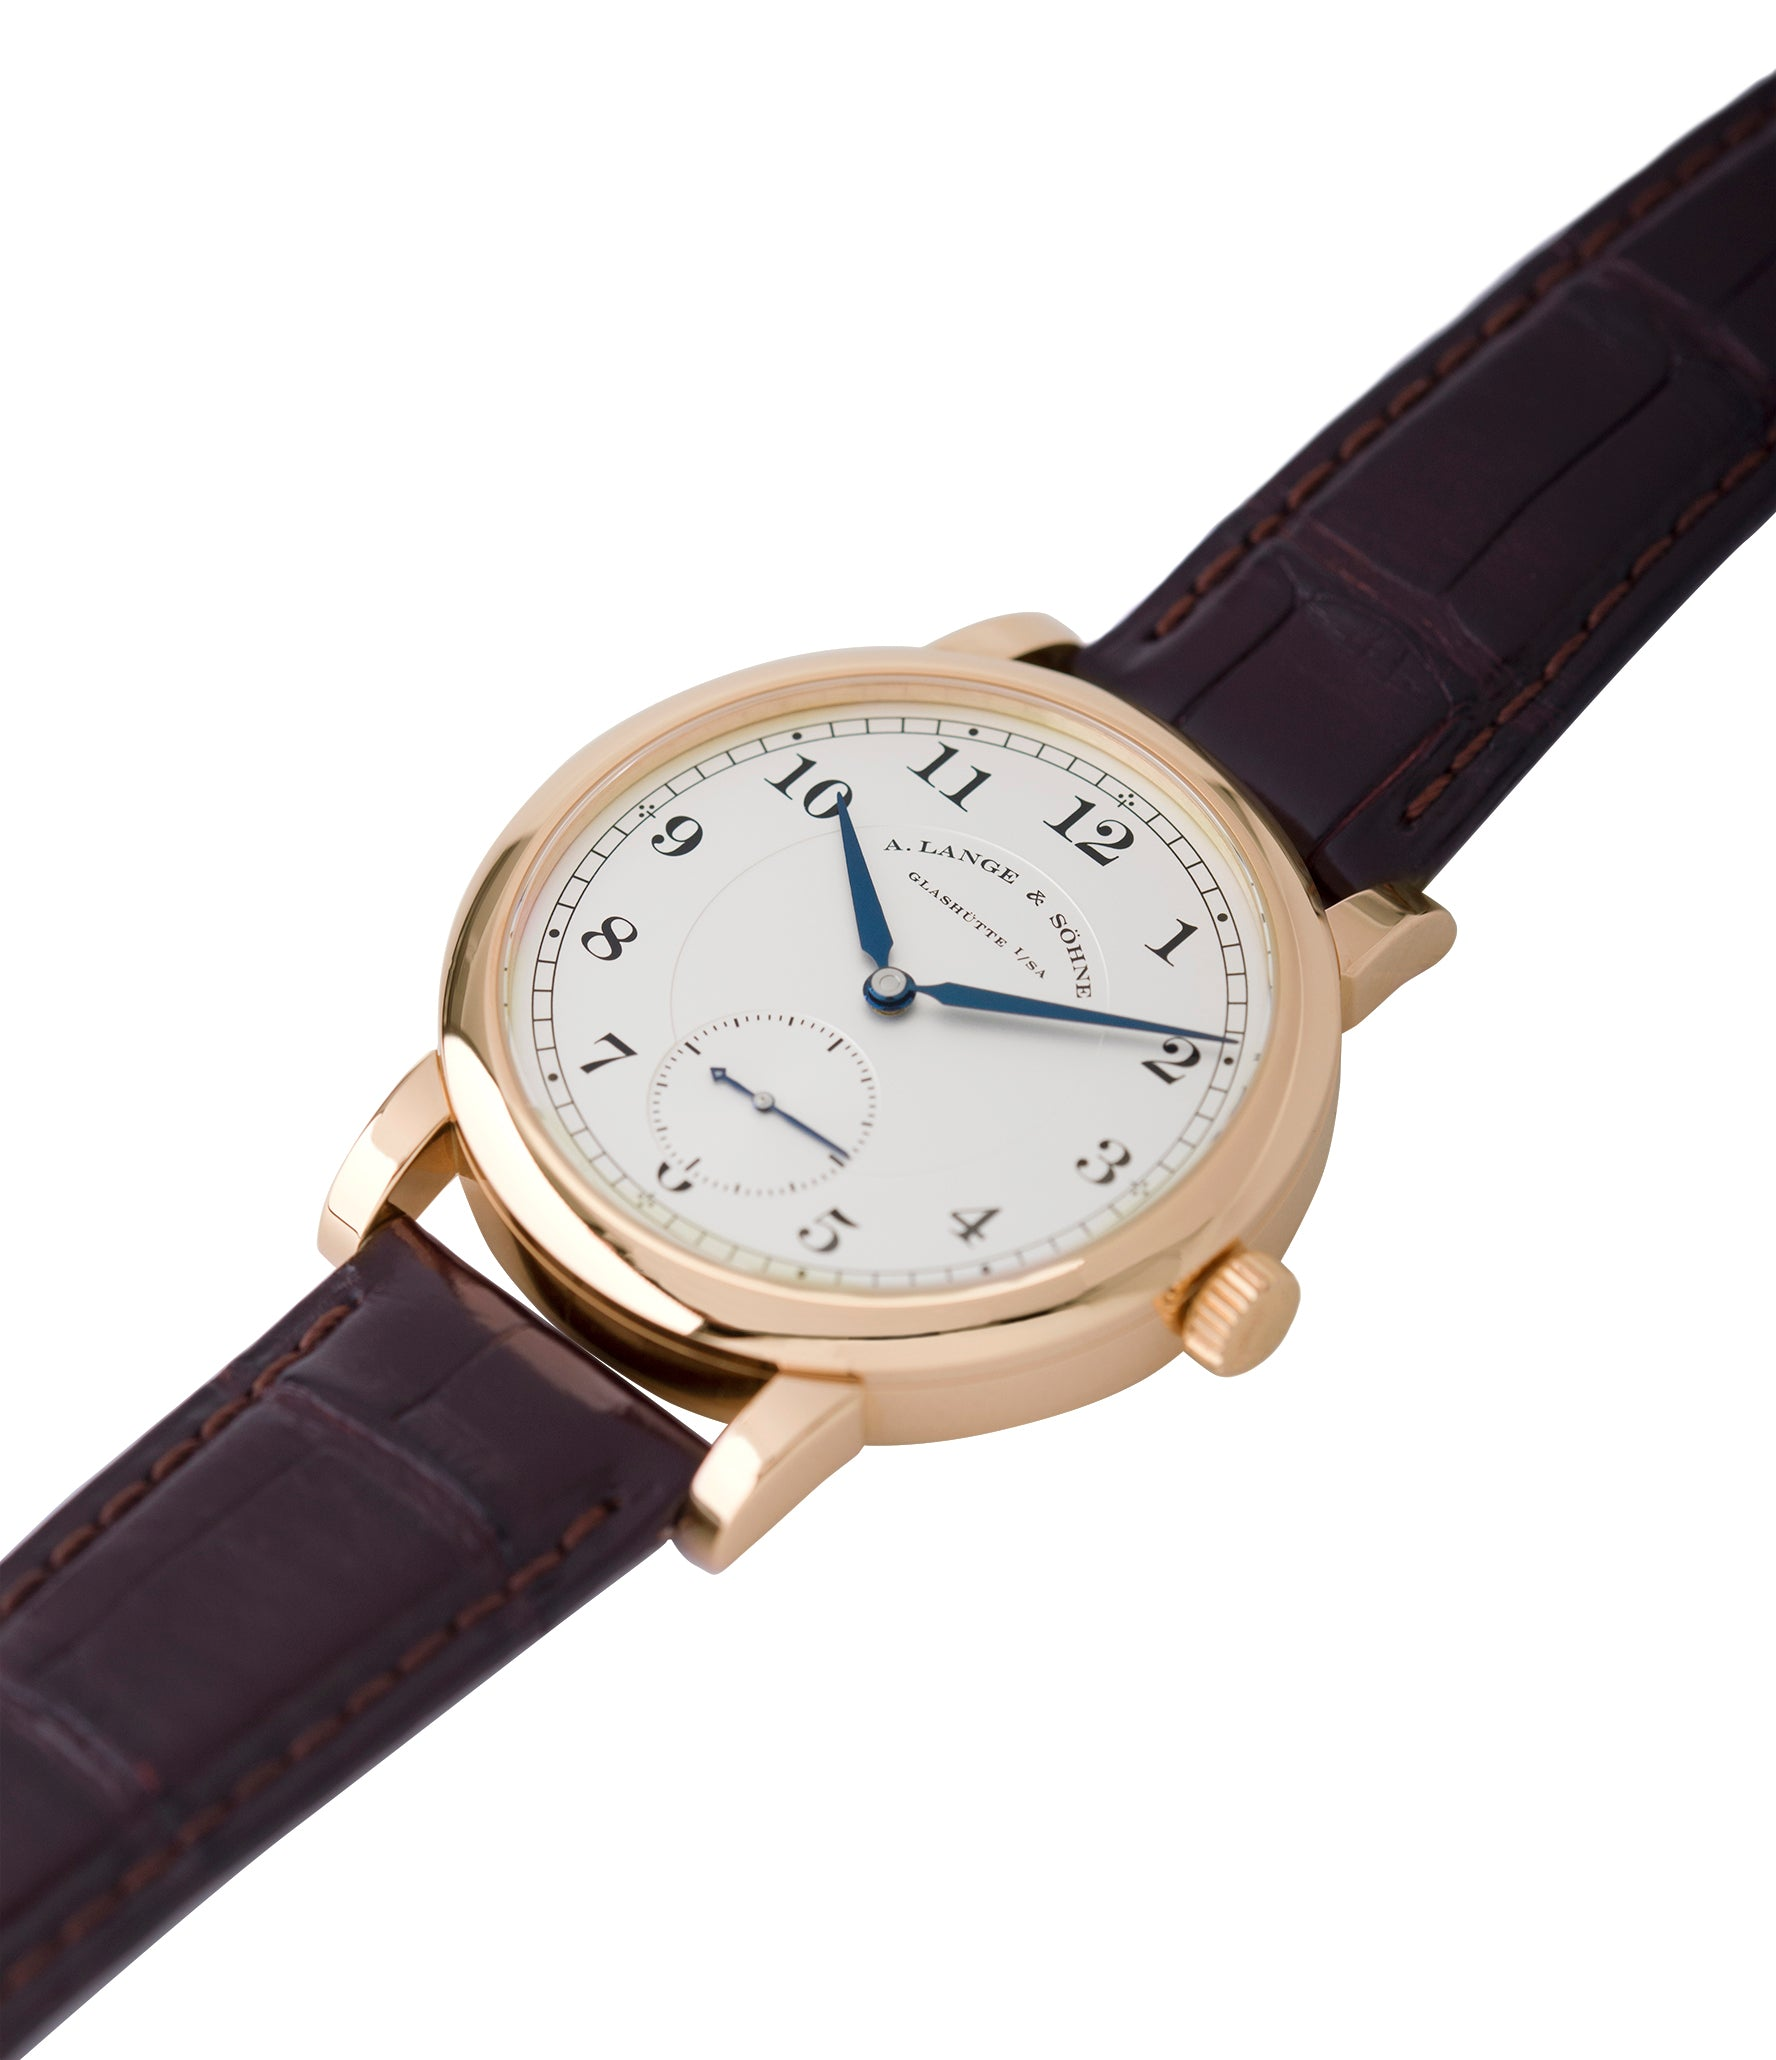 buy preowned A. Lange & Sohne 1815 233.032 rose gold dress watch for sale online at A Collected Man London Uk specialist of preowned luxury watches